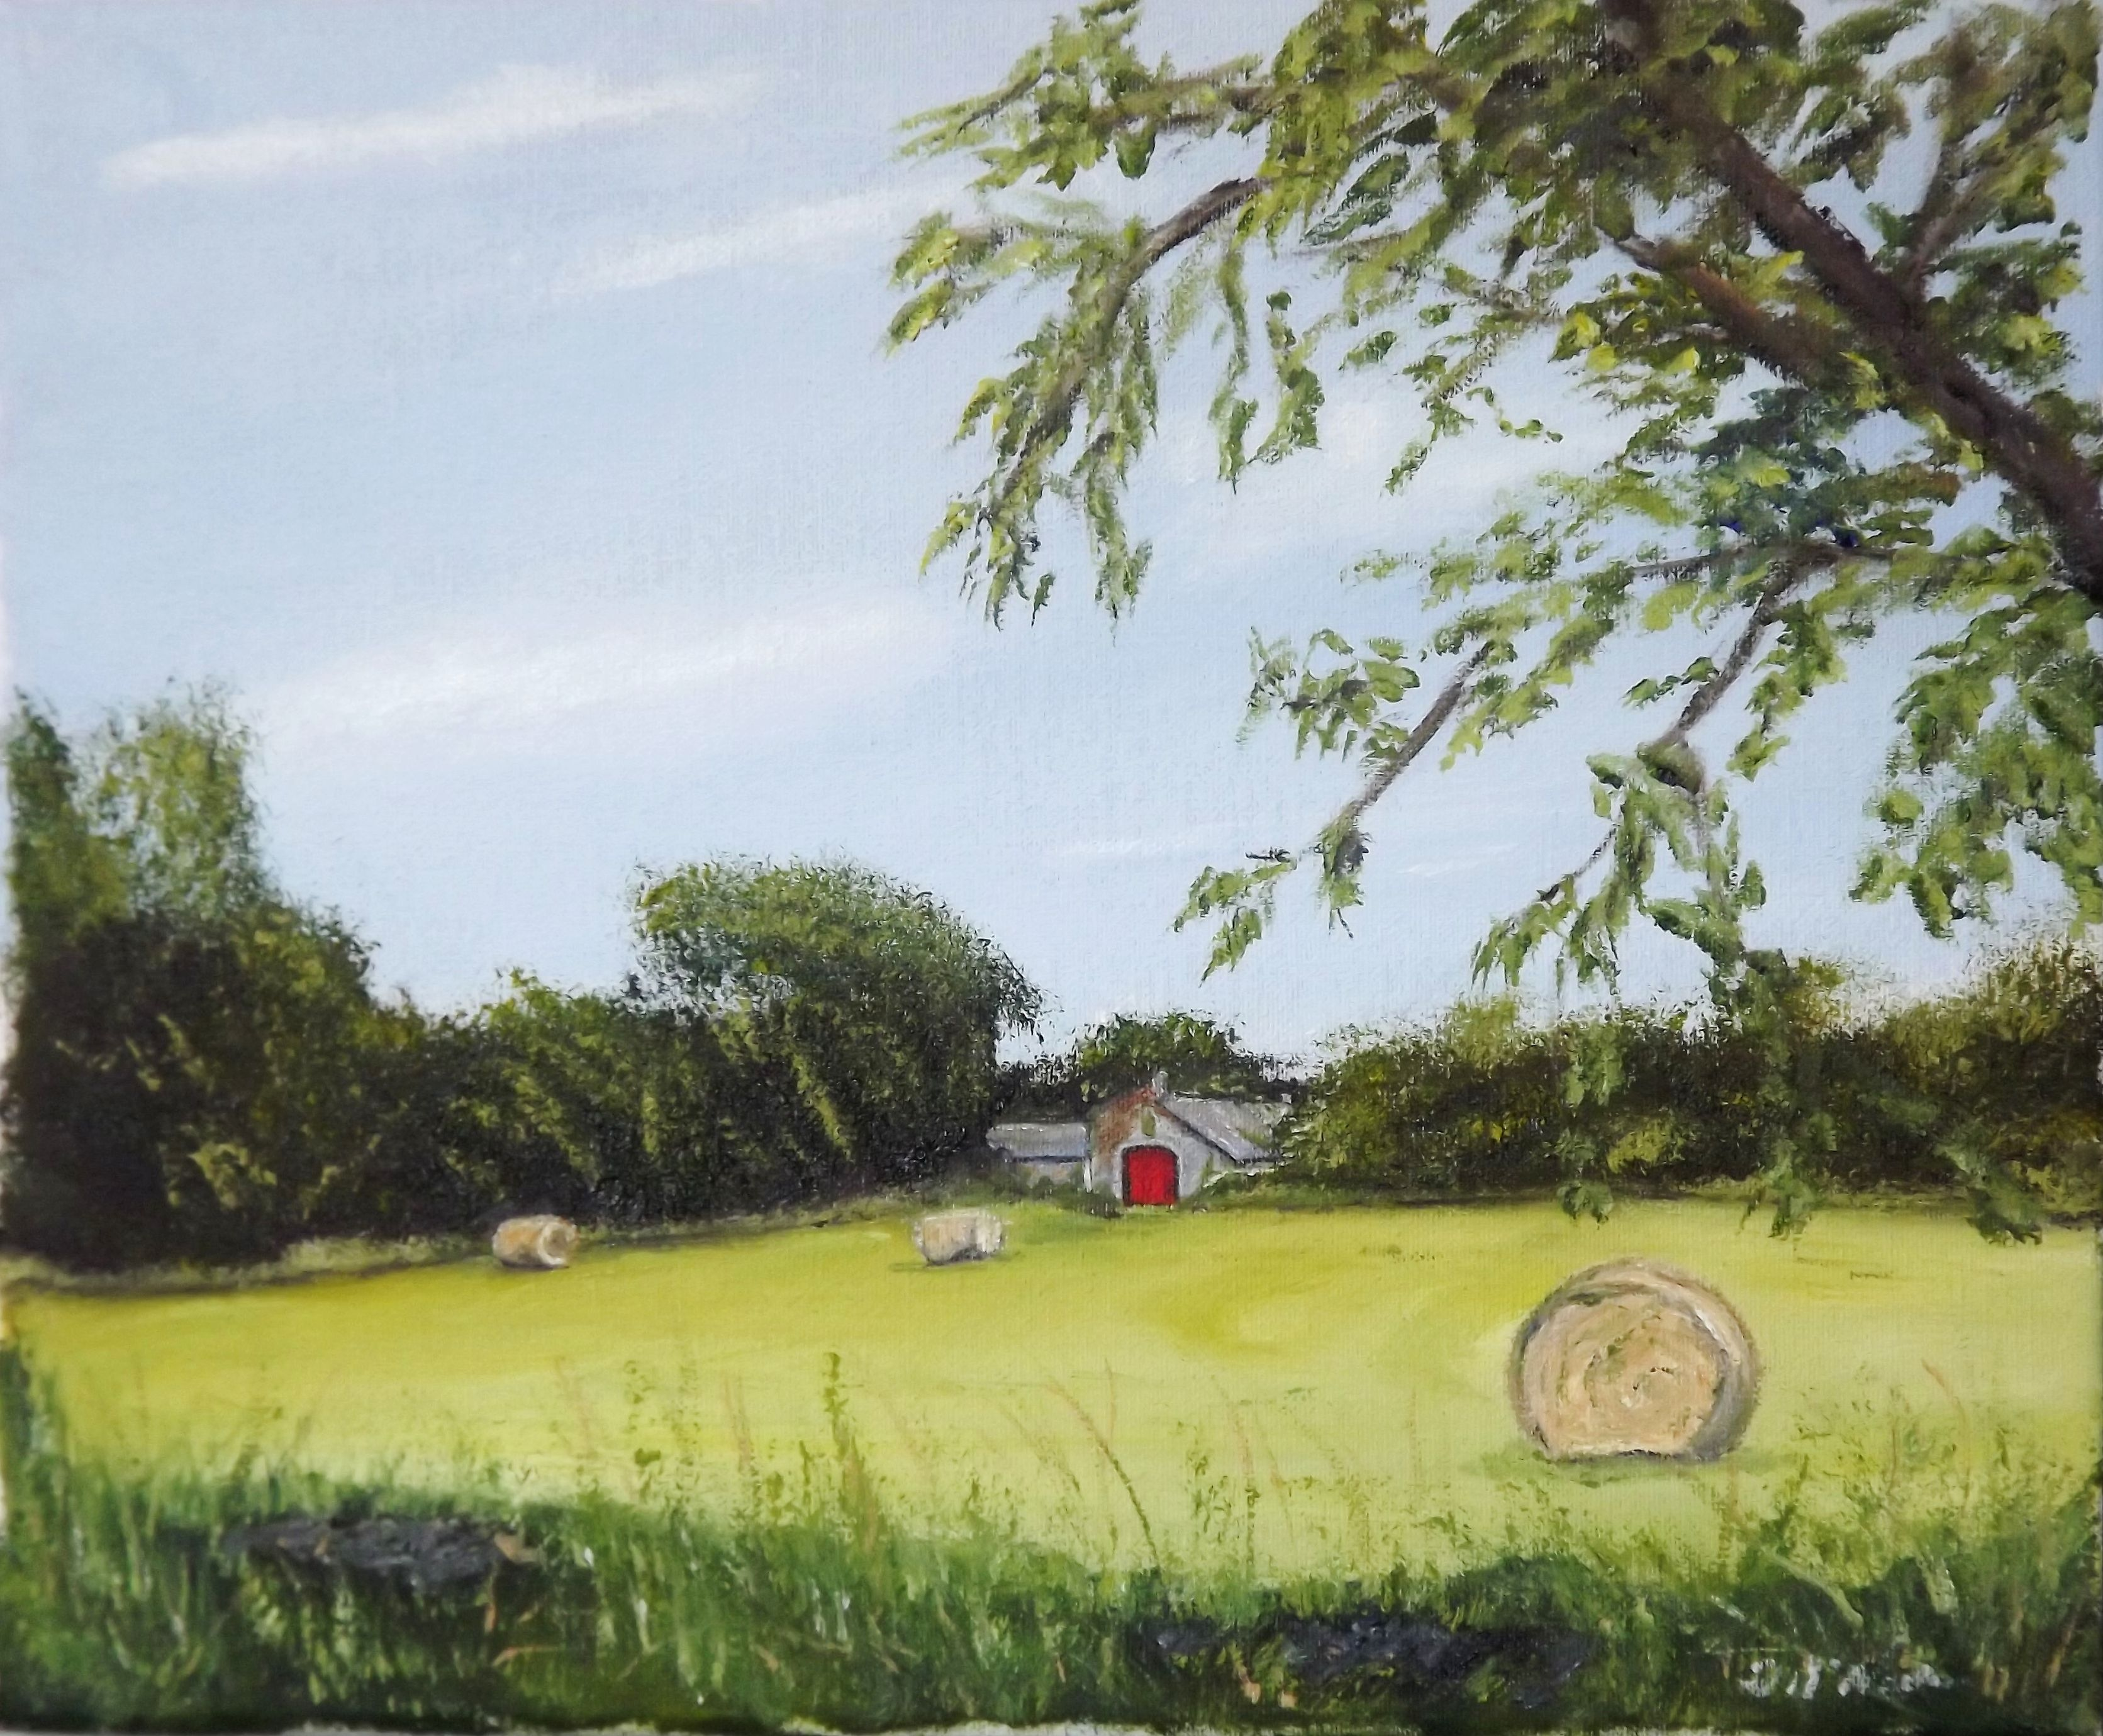 Saving the Hay while the sun shines  Oil on Canvas 10 X 12